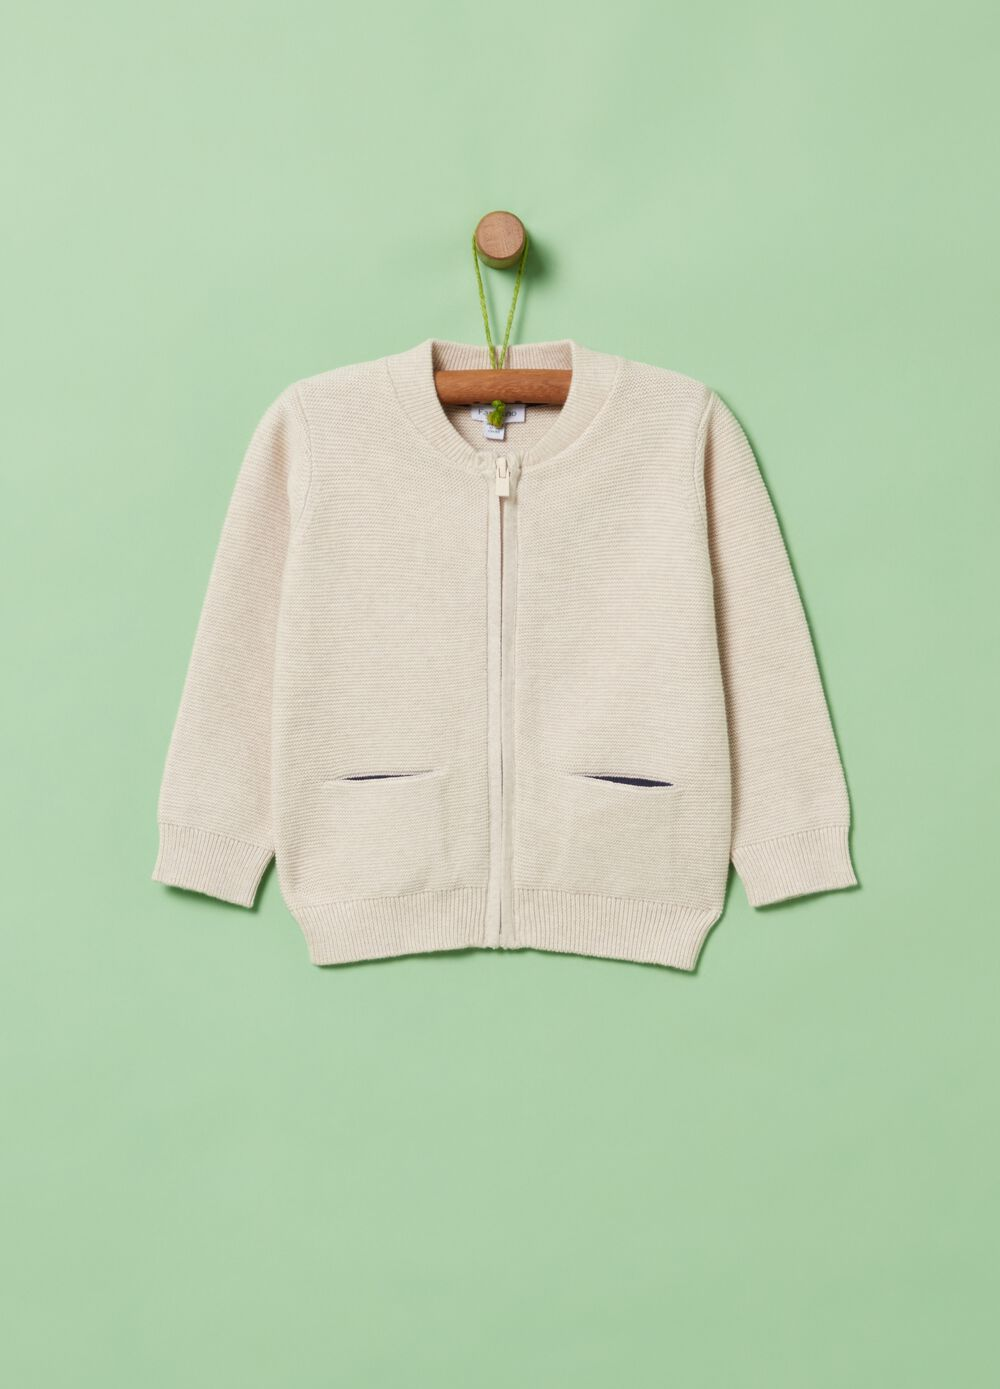 100% organic cotton cardigan with zip